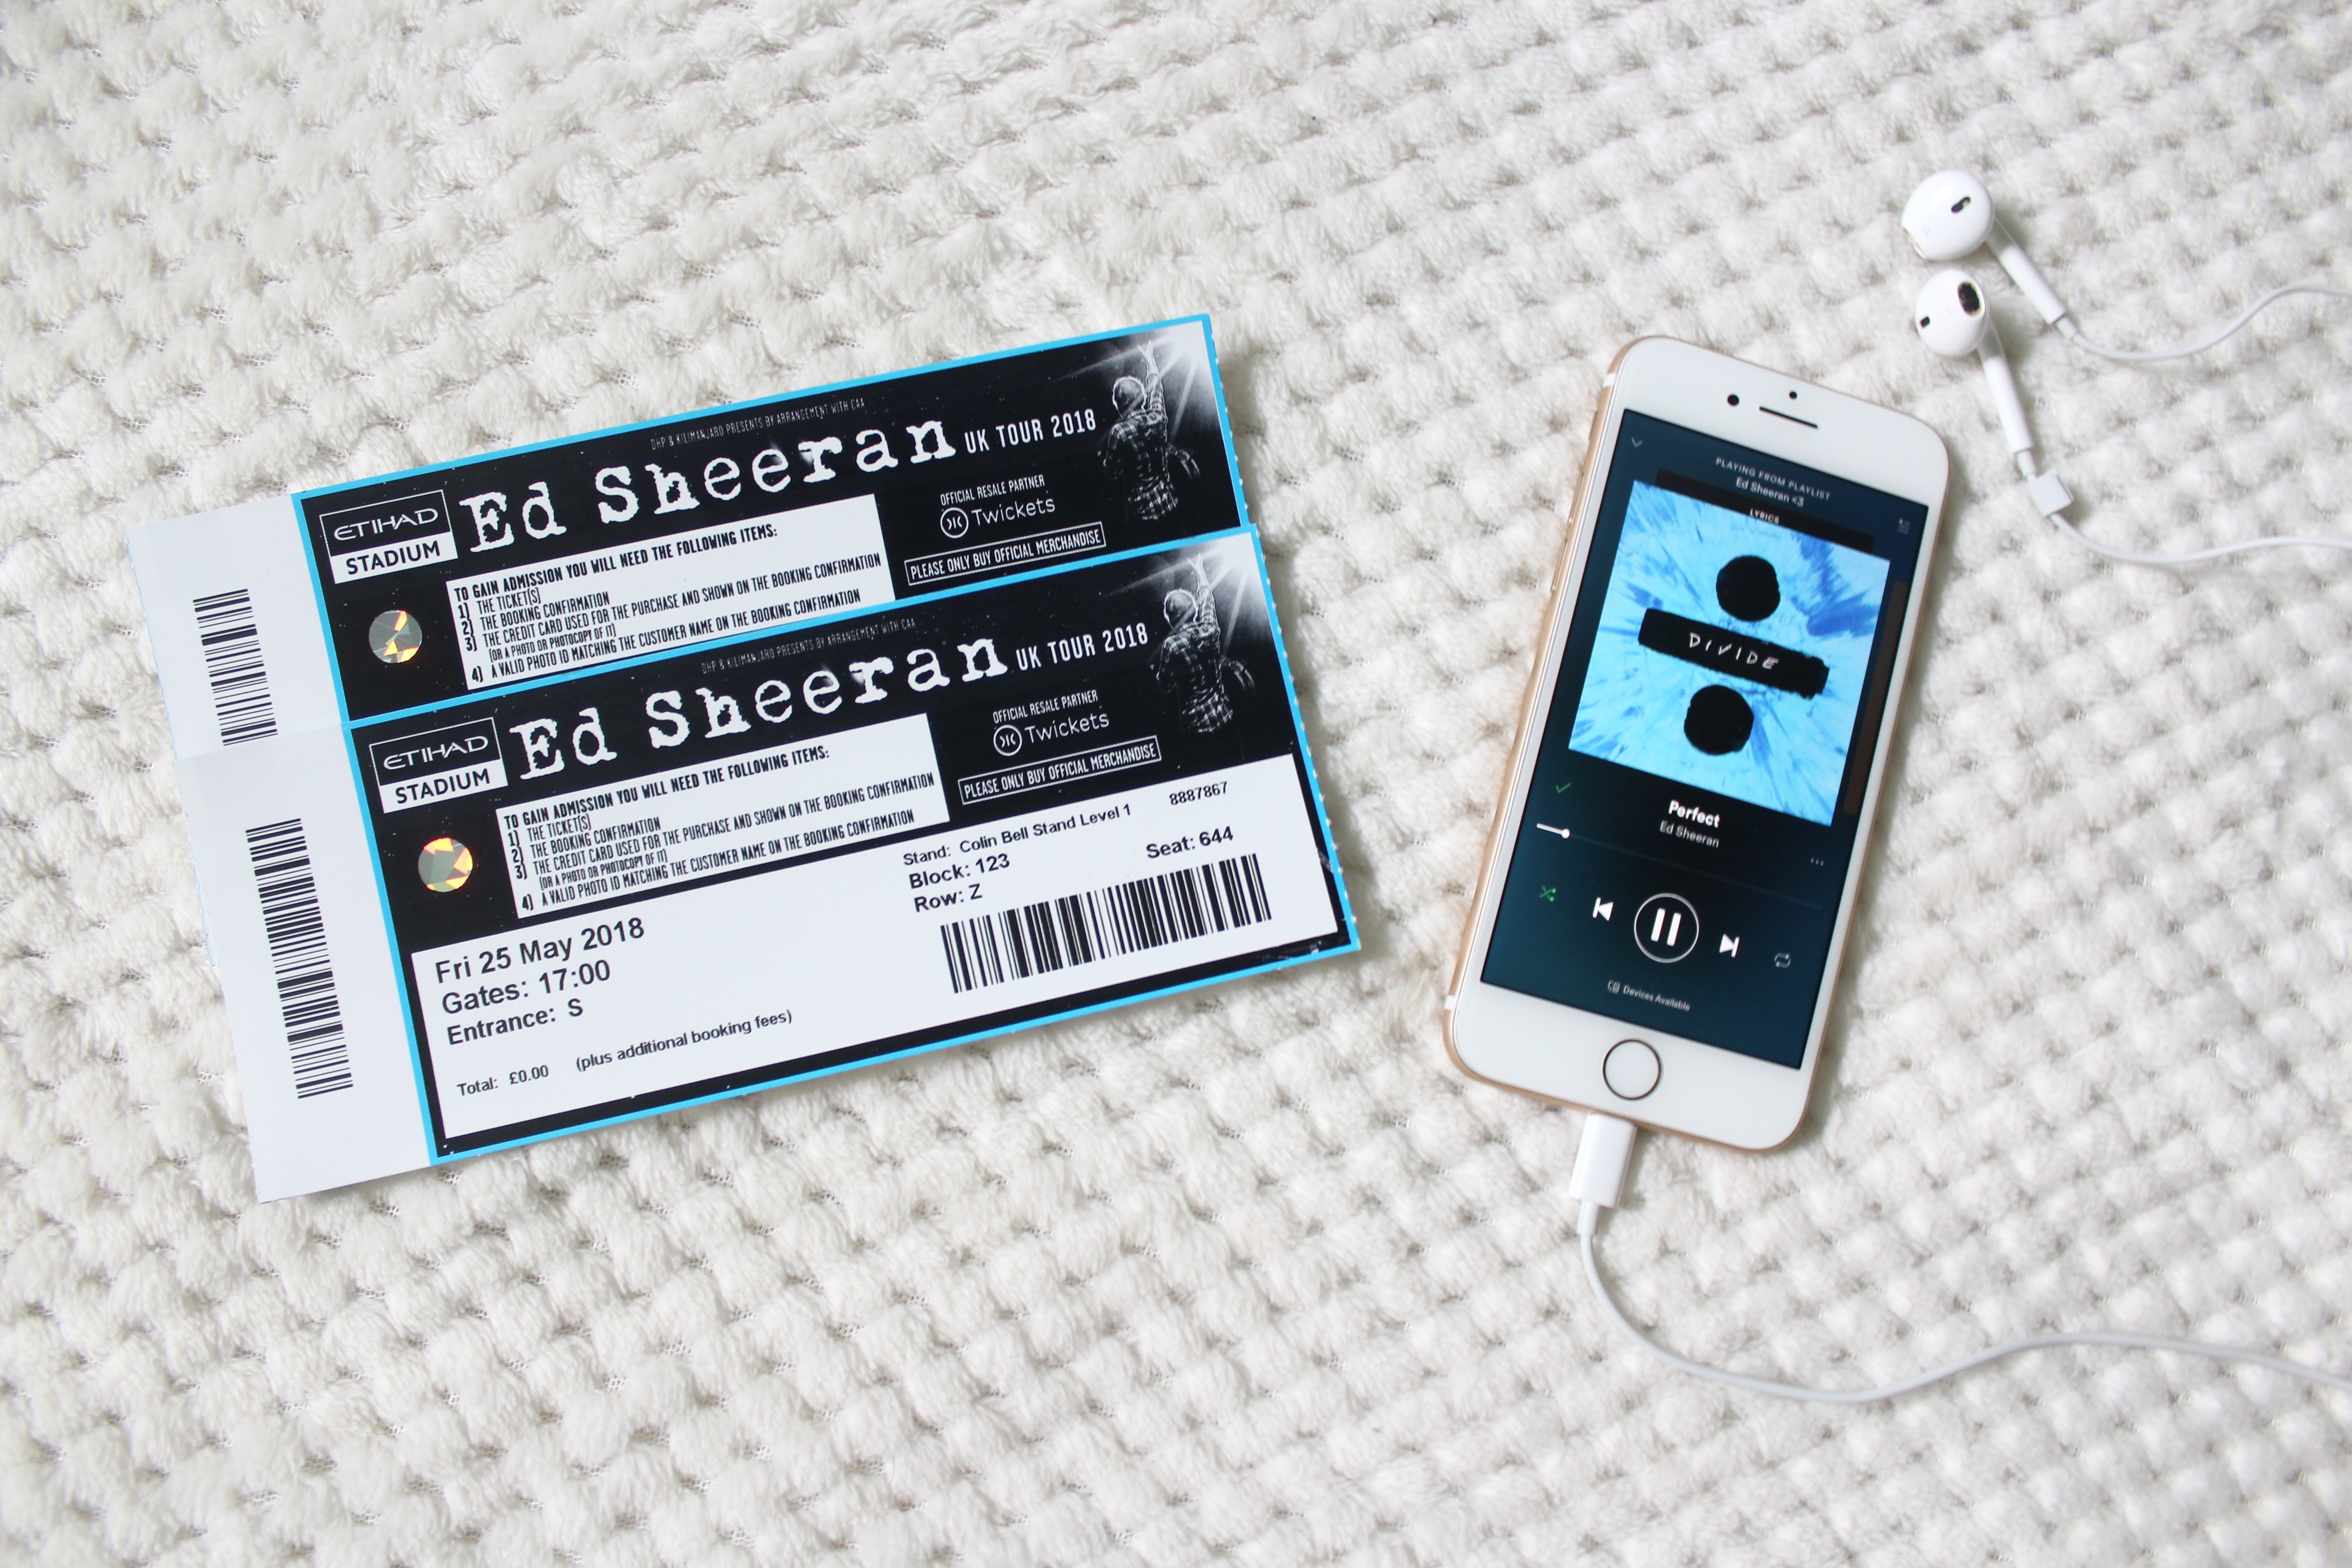 Ed Sheeran concert experience - My Blurred World